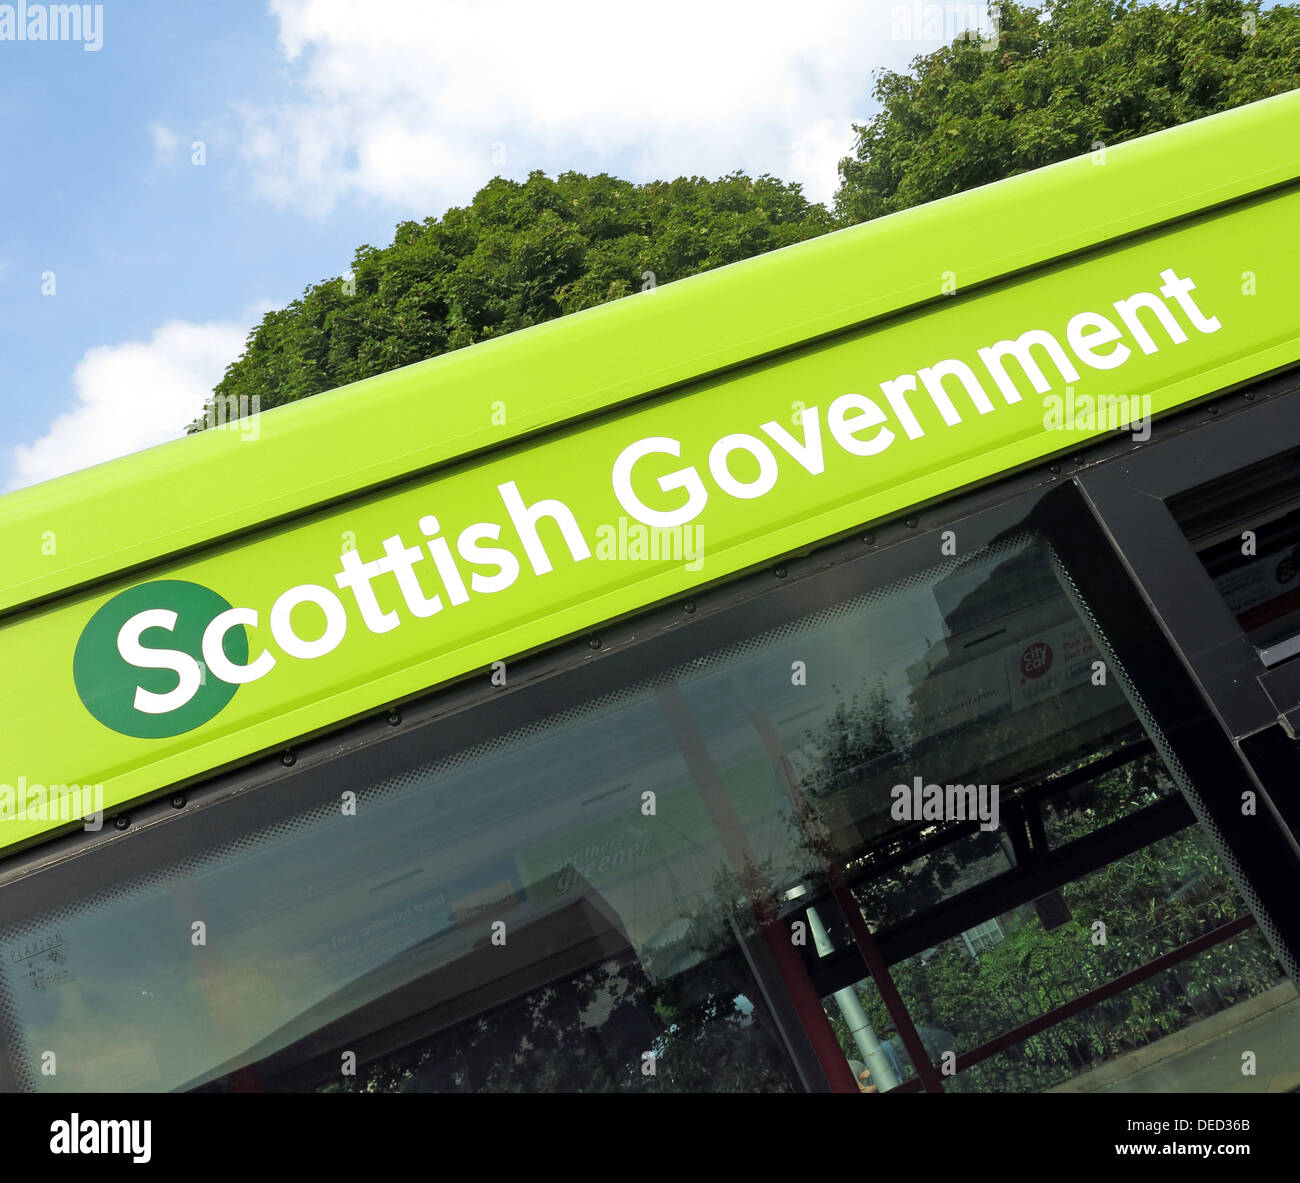 The,Scottish,Parliament,Government,in,Edinburgh,which,would,be,home,of,an,independent,Scotland,GB,great,Britain,United,Kingdom,referendum,2014,Sep,September,free,nation,sovereign,Holyrood,democratically,elected,body,referendum,pro-independence,National,Party,proindependence,pro,independence,SNP,bus,gotonysmith,Pàrlamaid,na,h-Alba,Alba,devolved,national,unicameral,legislature,of,solo,vote,voting,freedom,free,MSP,MSPS,act,1998,Acts,of,Union,act,national,nationalistic,fascist,north,south,debate,green,lothian,buses,public,transport,vehicle,EH99,1SP,EH991SP,Horse,Wynd,tourist,tourism,travel,tour,destination,Tour,tourist,tourism,tourist,attraction,Scotland,Capital,City,Scots,Scottish,icon,iconic,@Hotpixuk,HotpixUk,Buy Pictures of,Buy Images Of,Tourist Attraction,city Centre